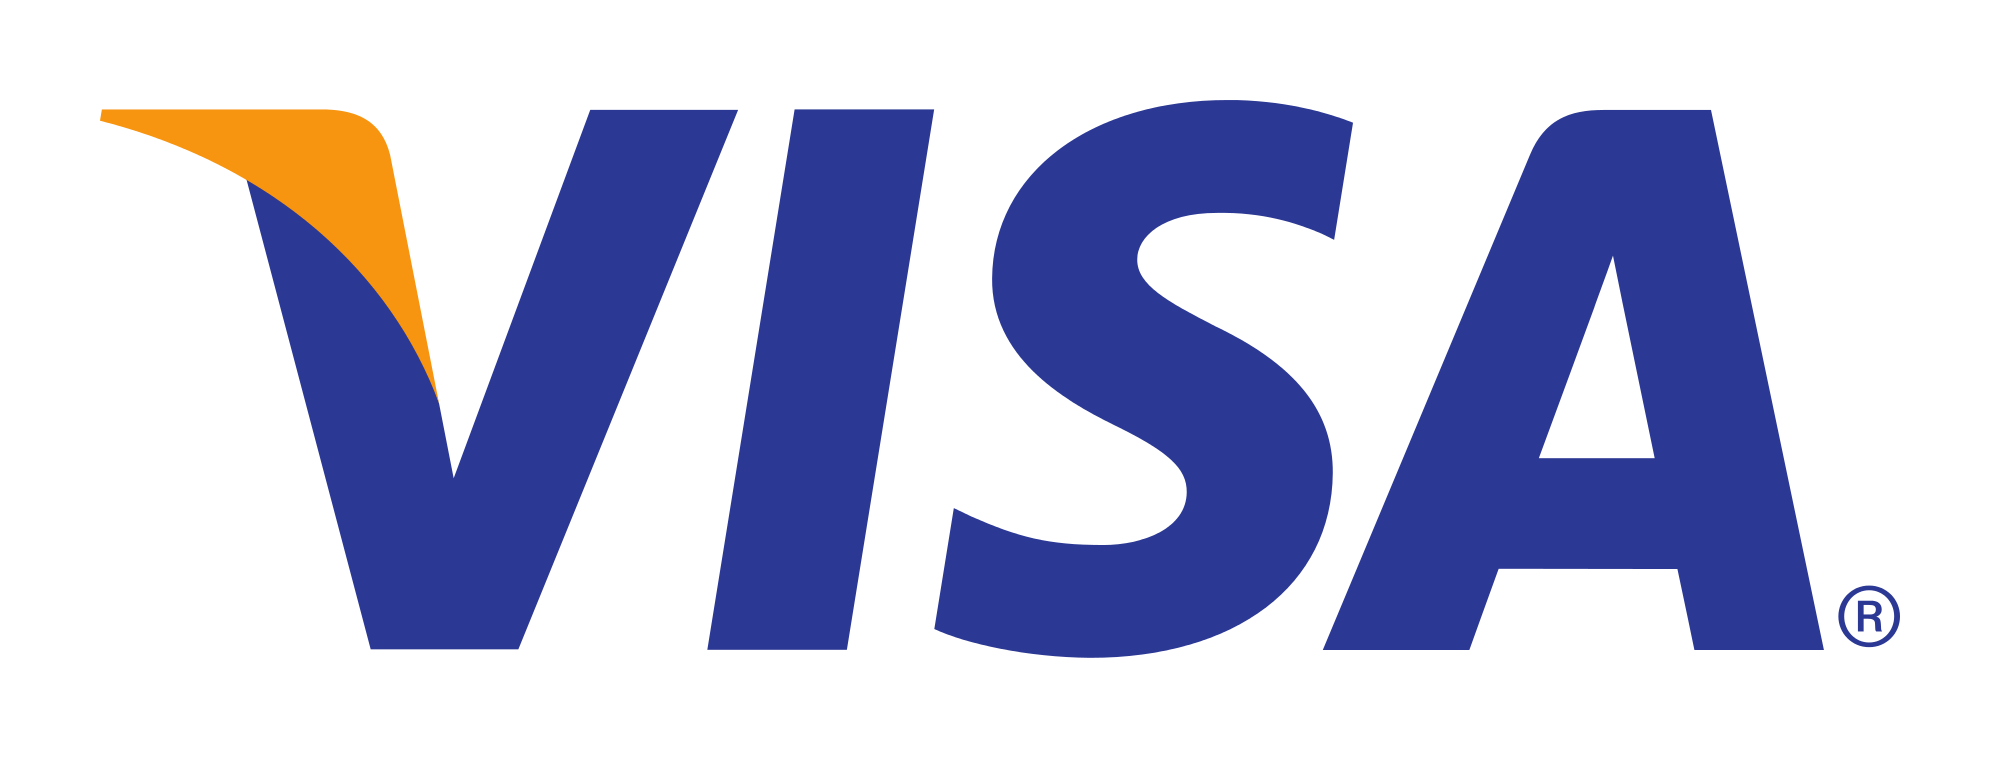 visa simy payment, emergency beacon, safety beacon, personal distress beacon